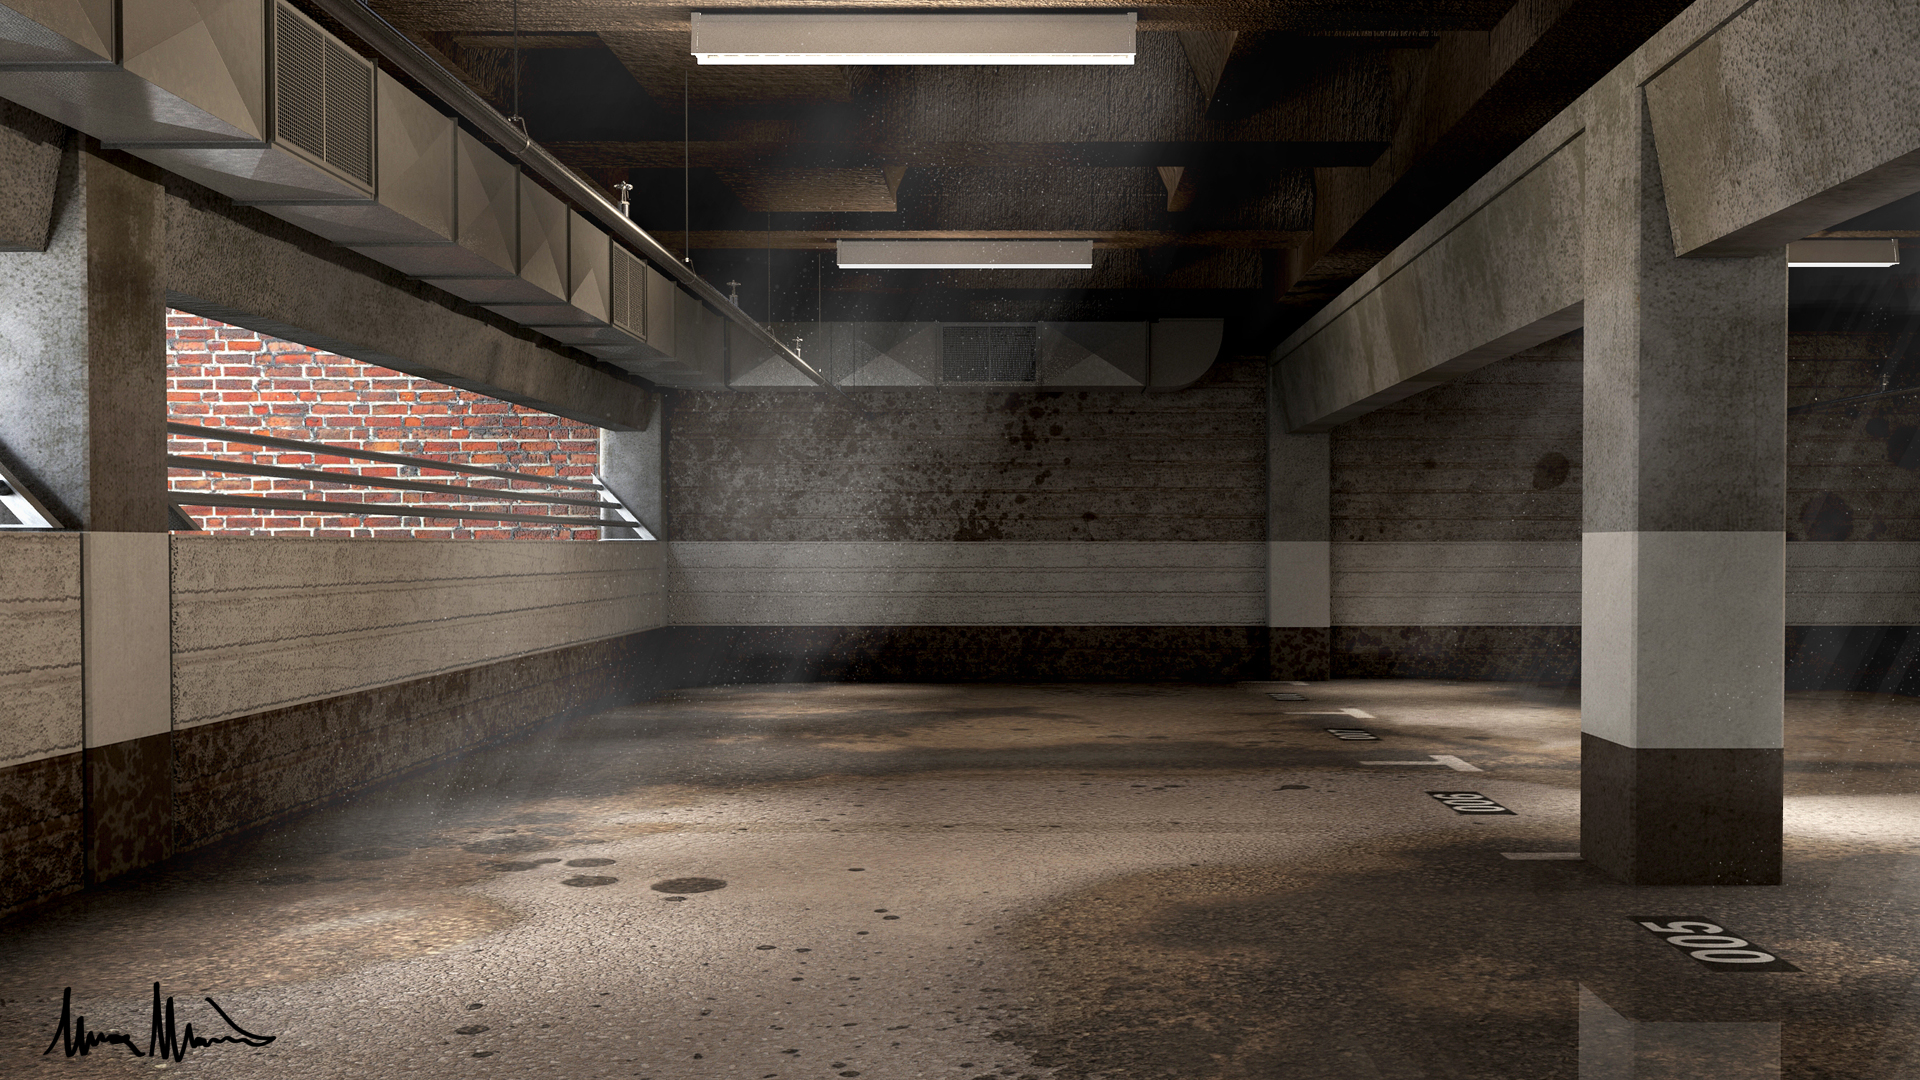 Parking garage somewhere in europe by lucamarin on for Garage d ambonnay